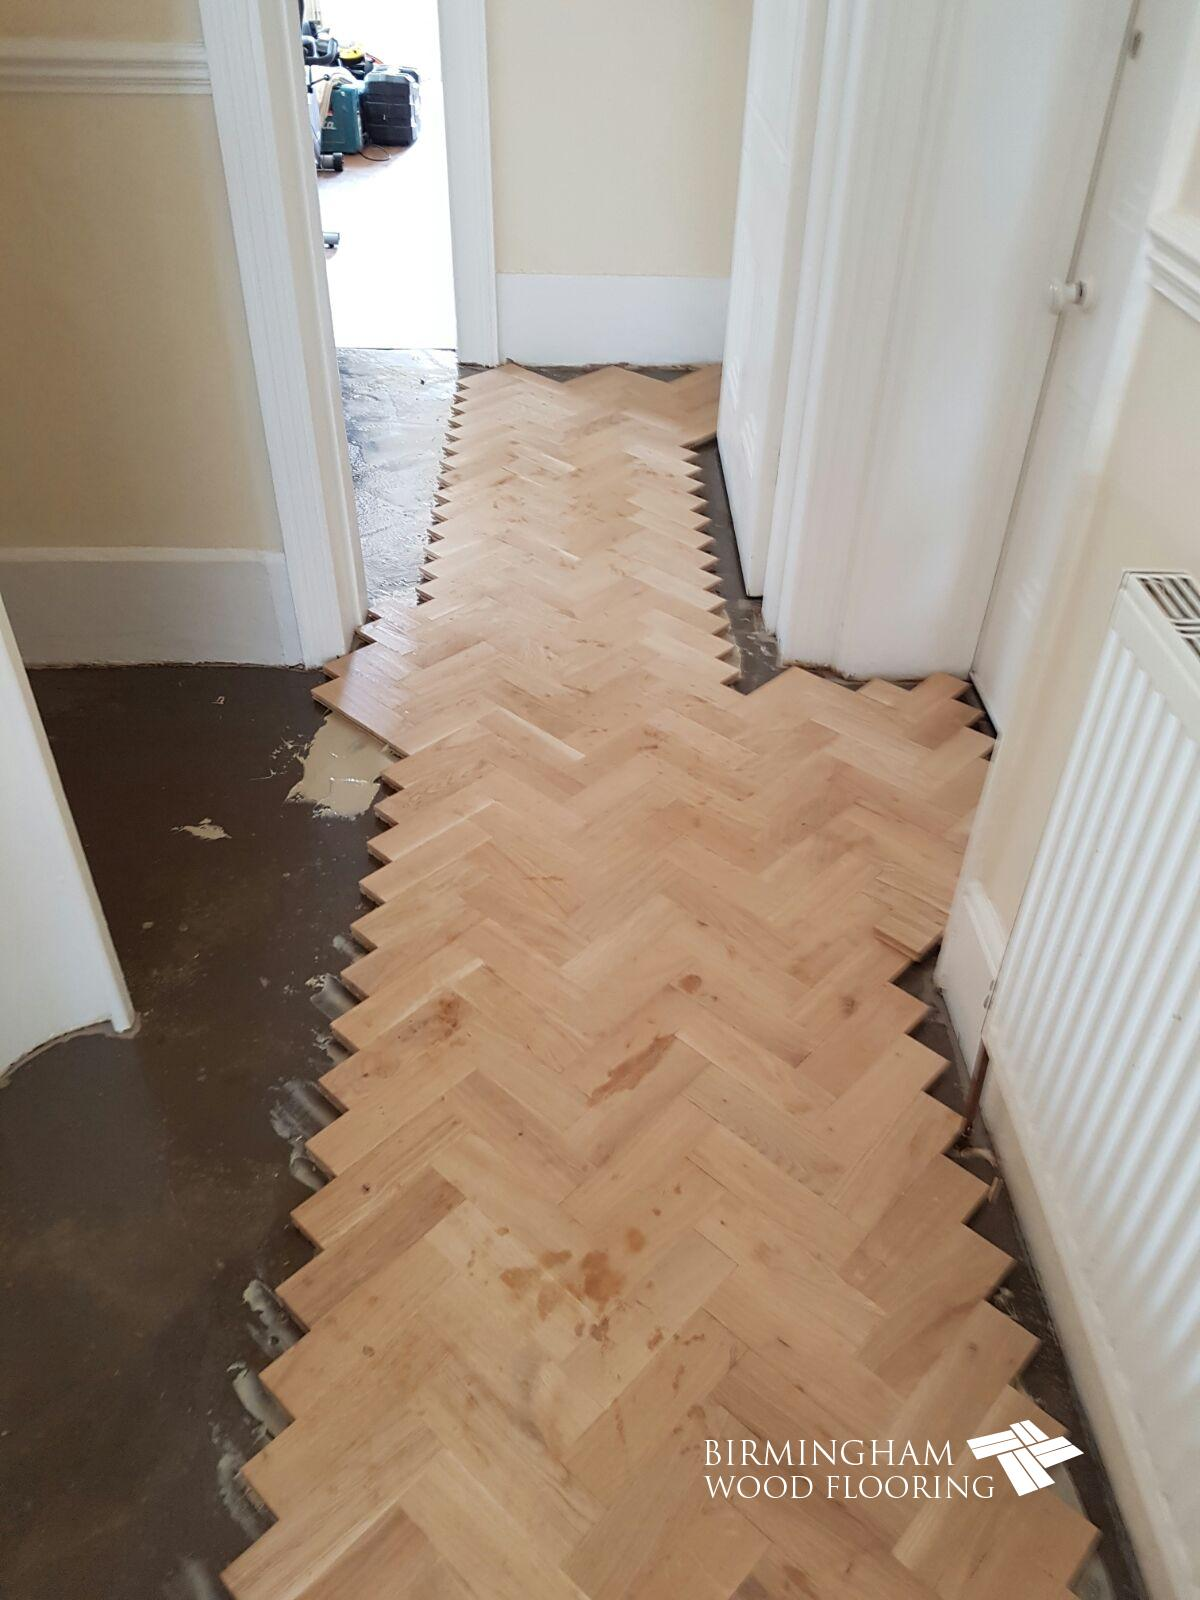 Installation-of-parquet-blocks-either-side-of-header-line-Edgbaston-Birmingham-2